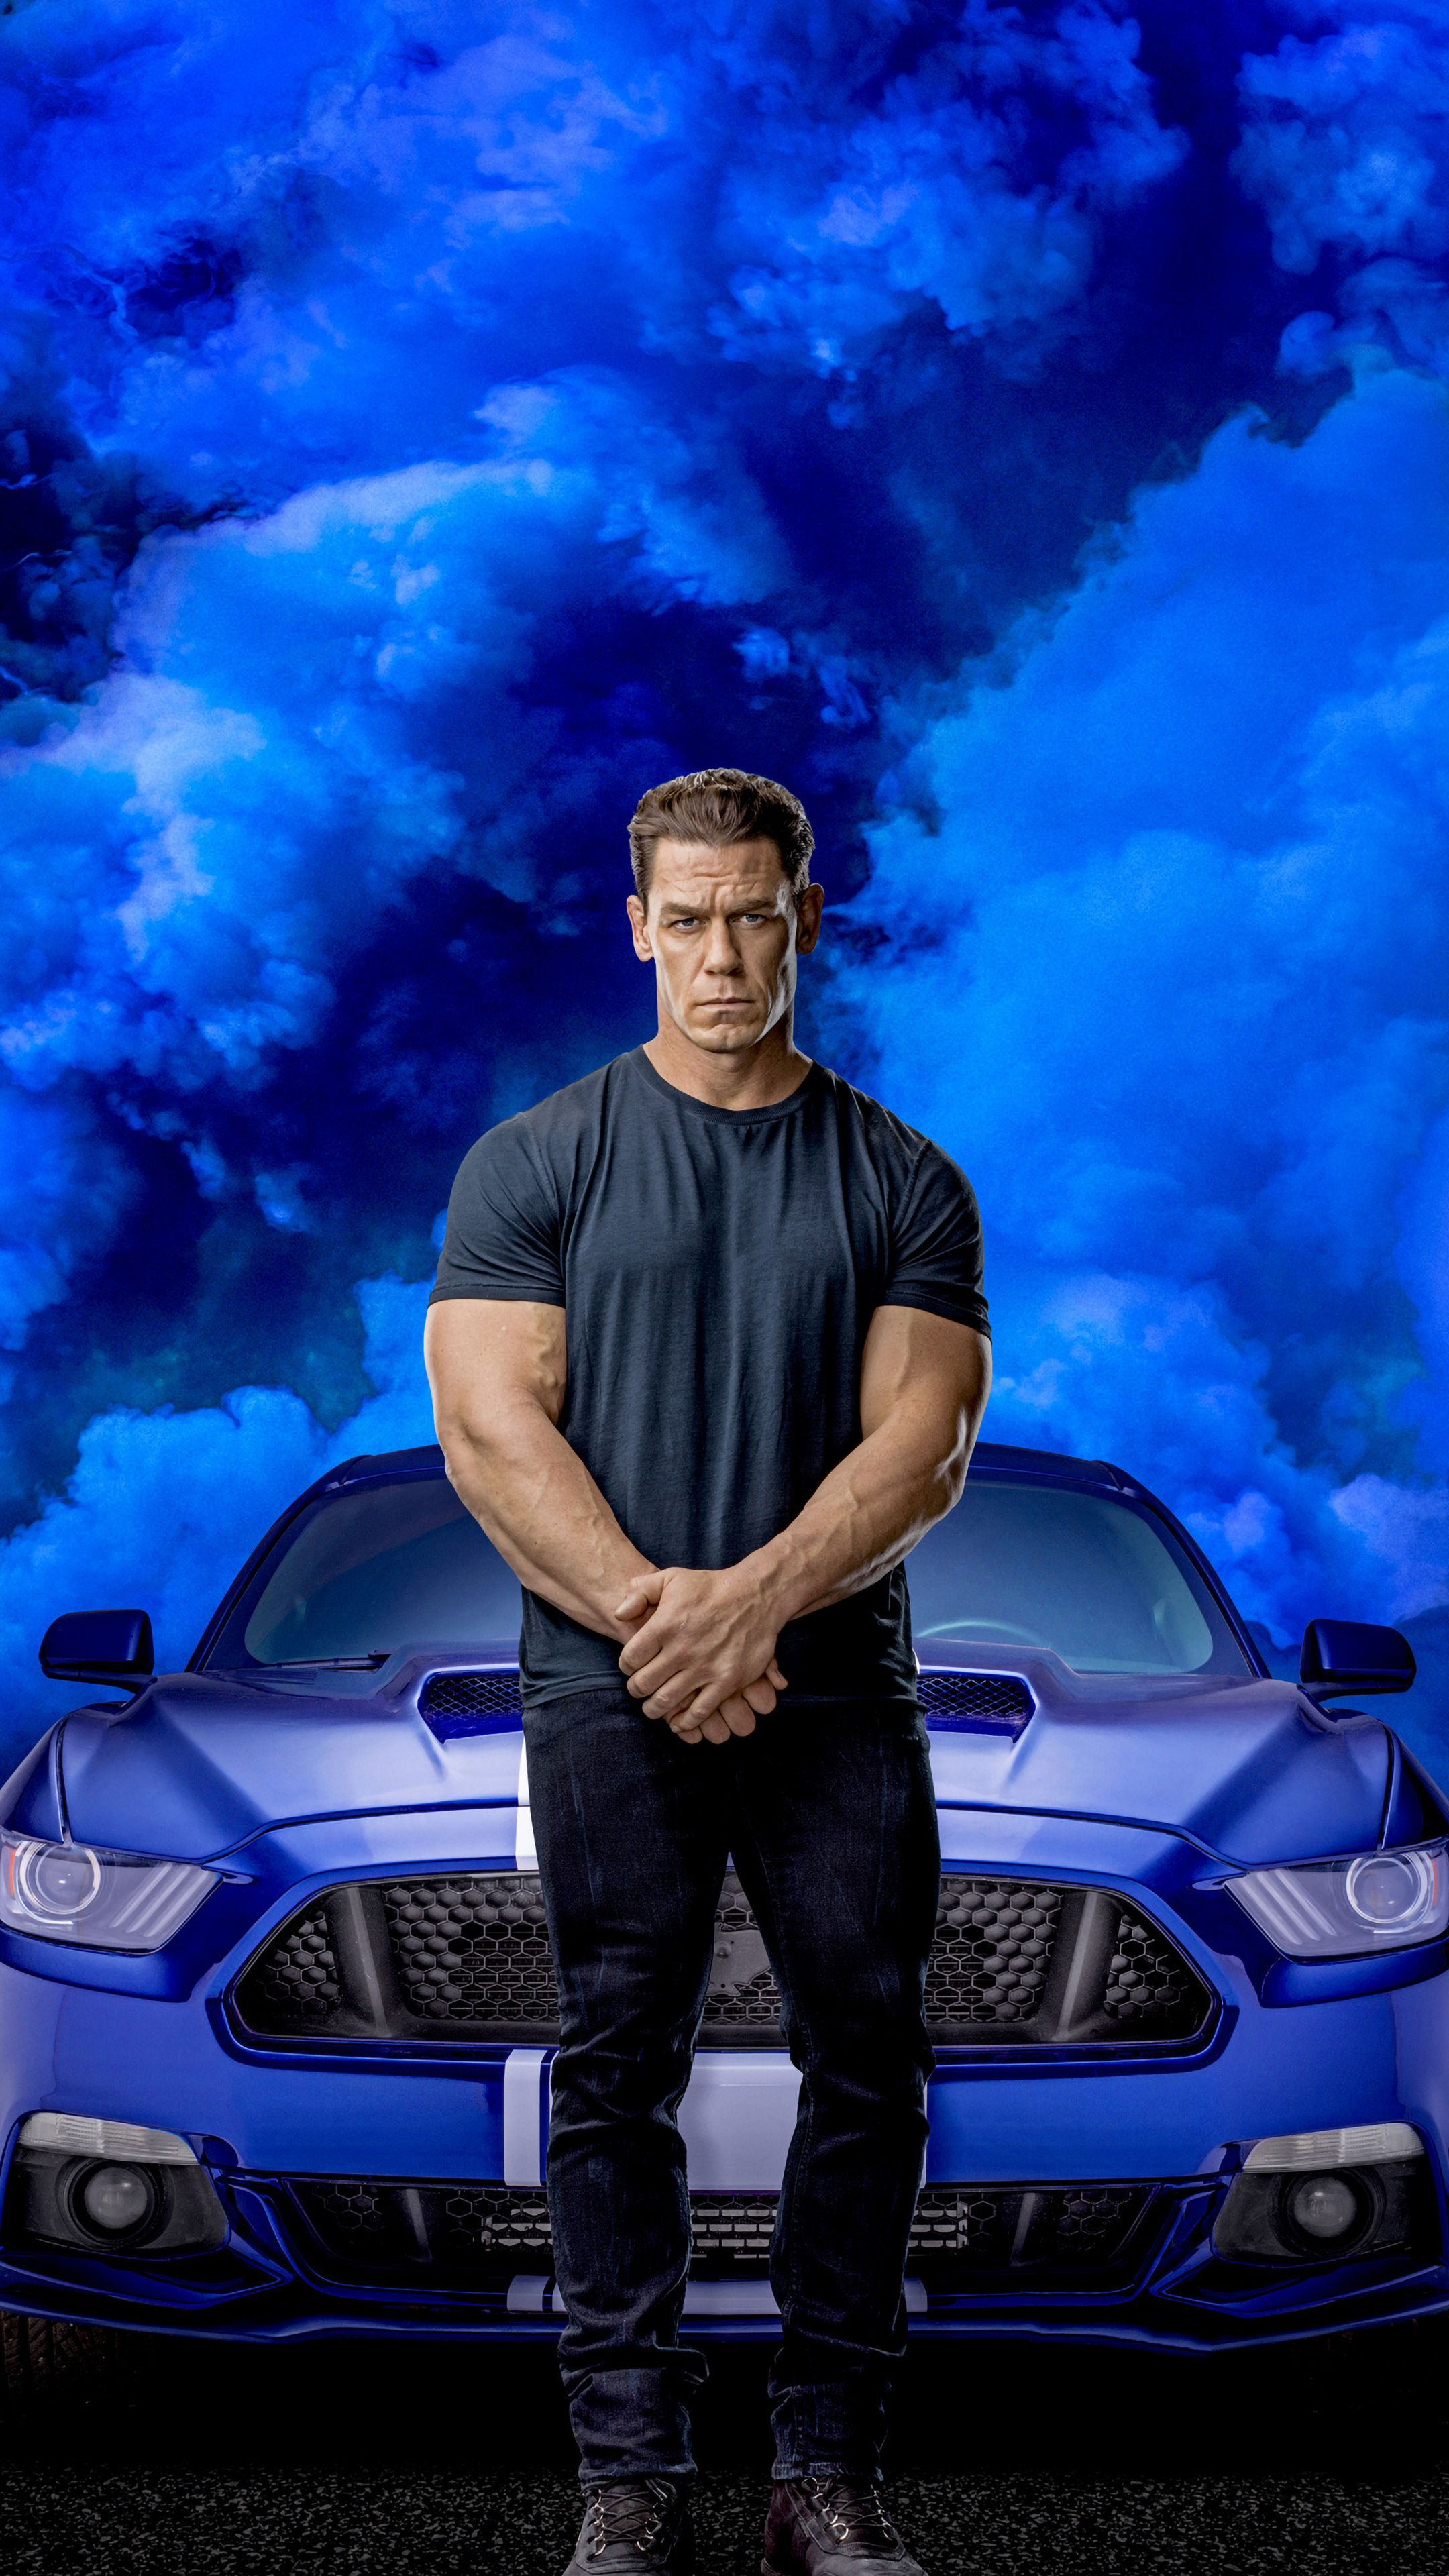 2160x3840 John Cena Fast And Furious 9 2020 Wallpaper In 2020